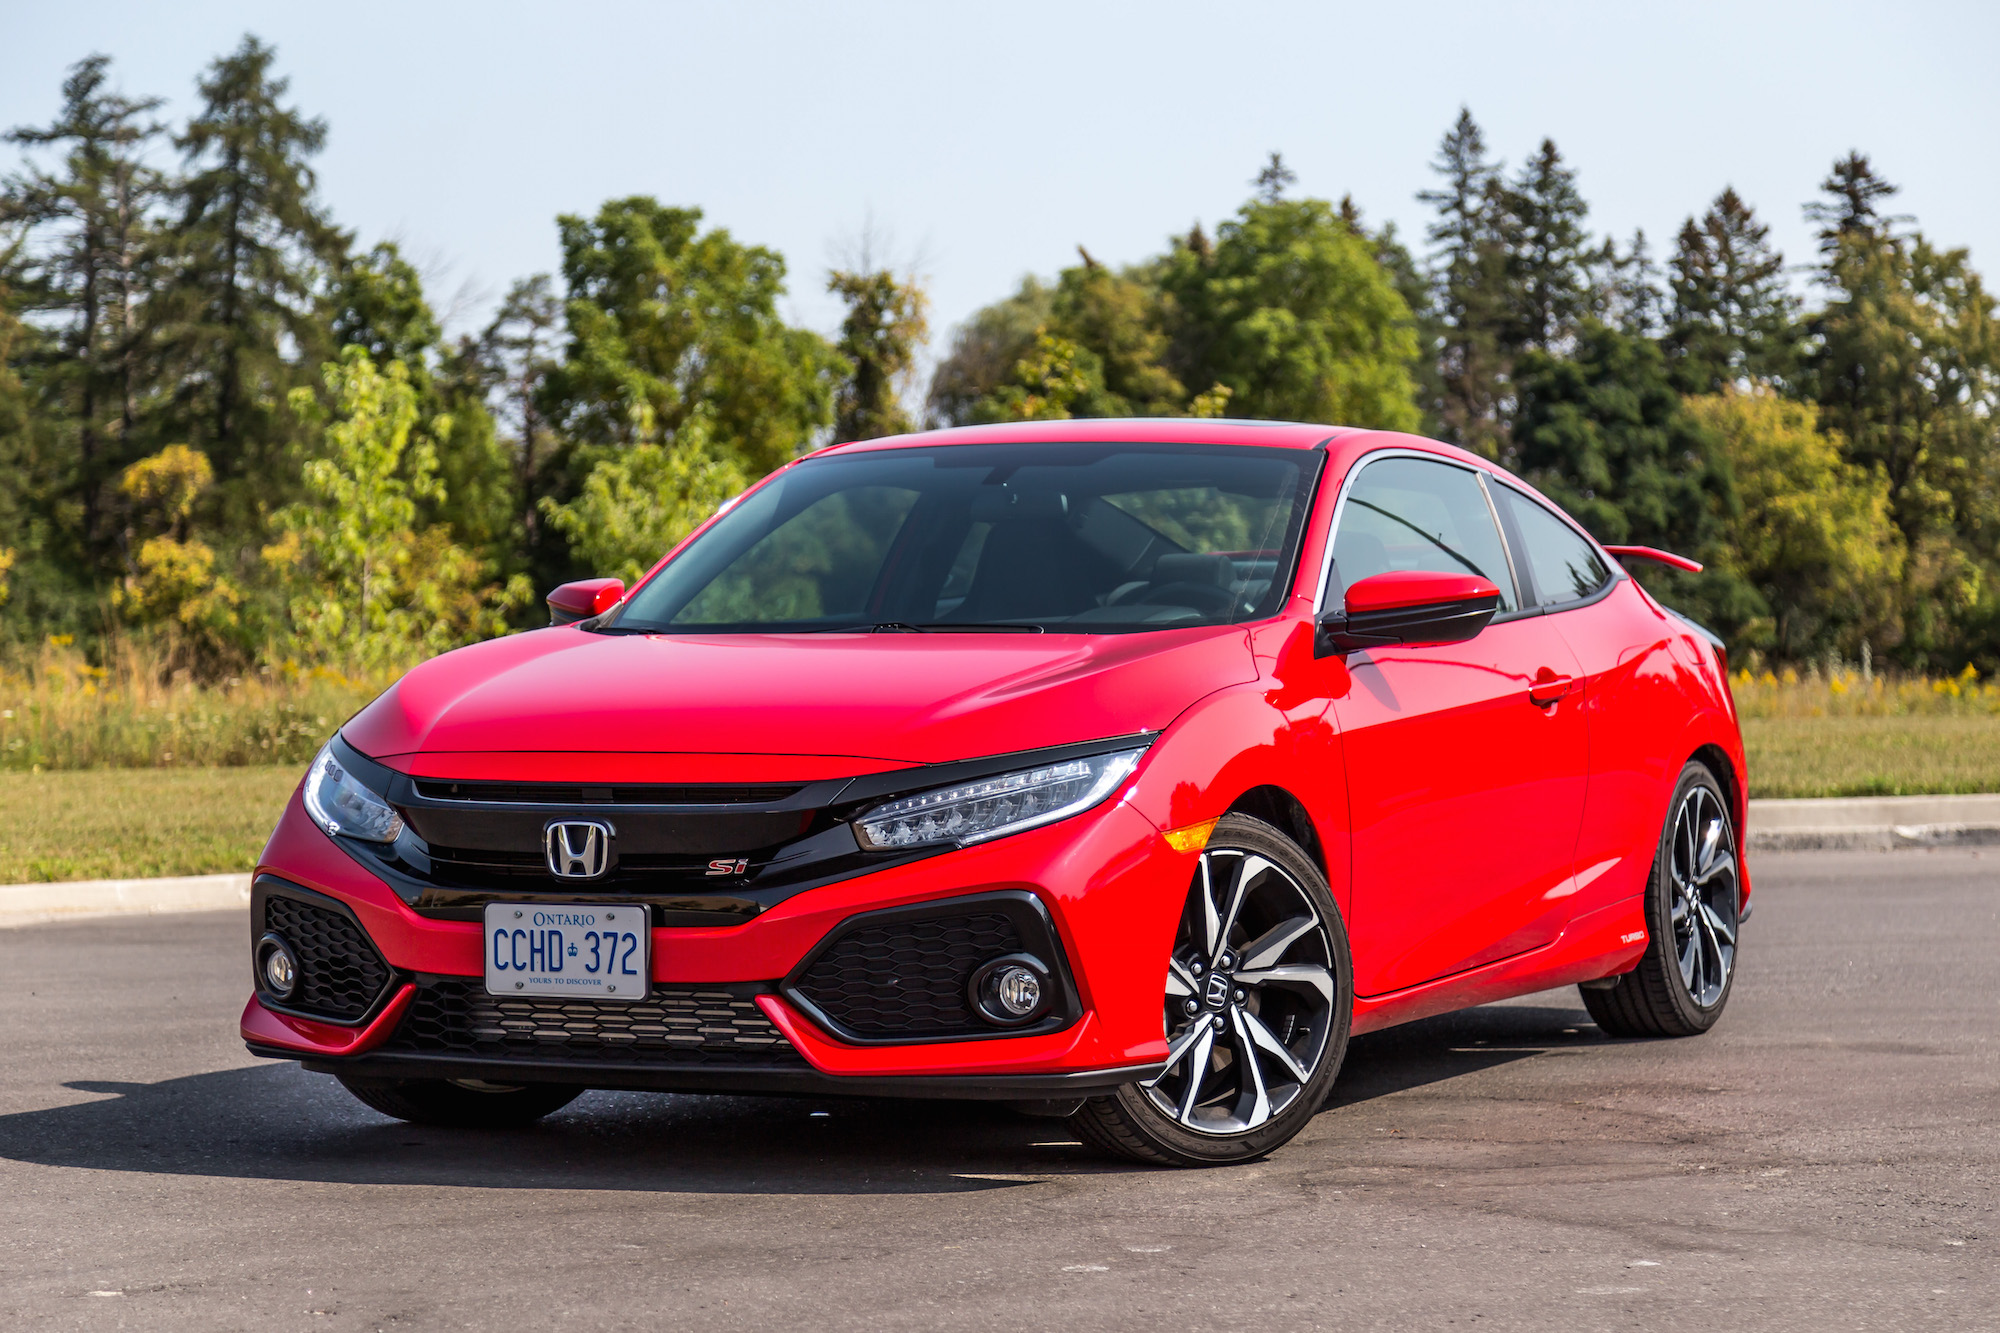 2017 Civic Si Specs >> Review 2017 Honda Civic Si Coupe Canadian Auto Review